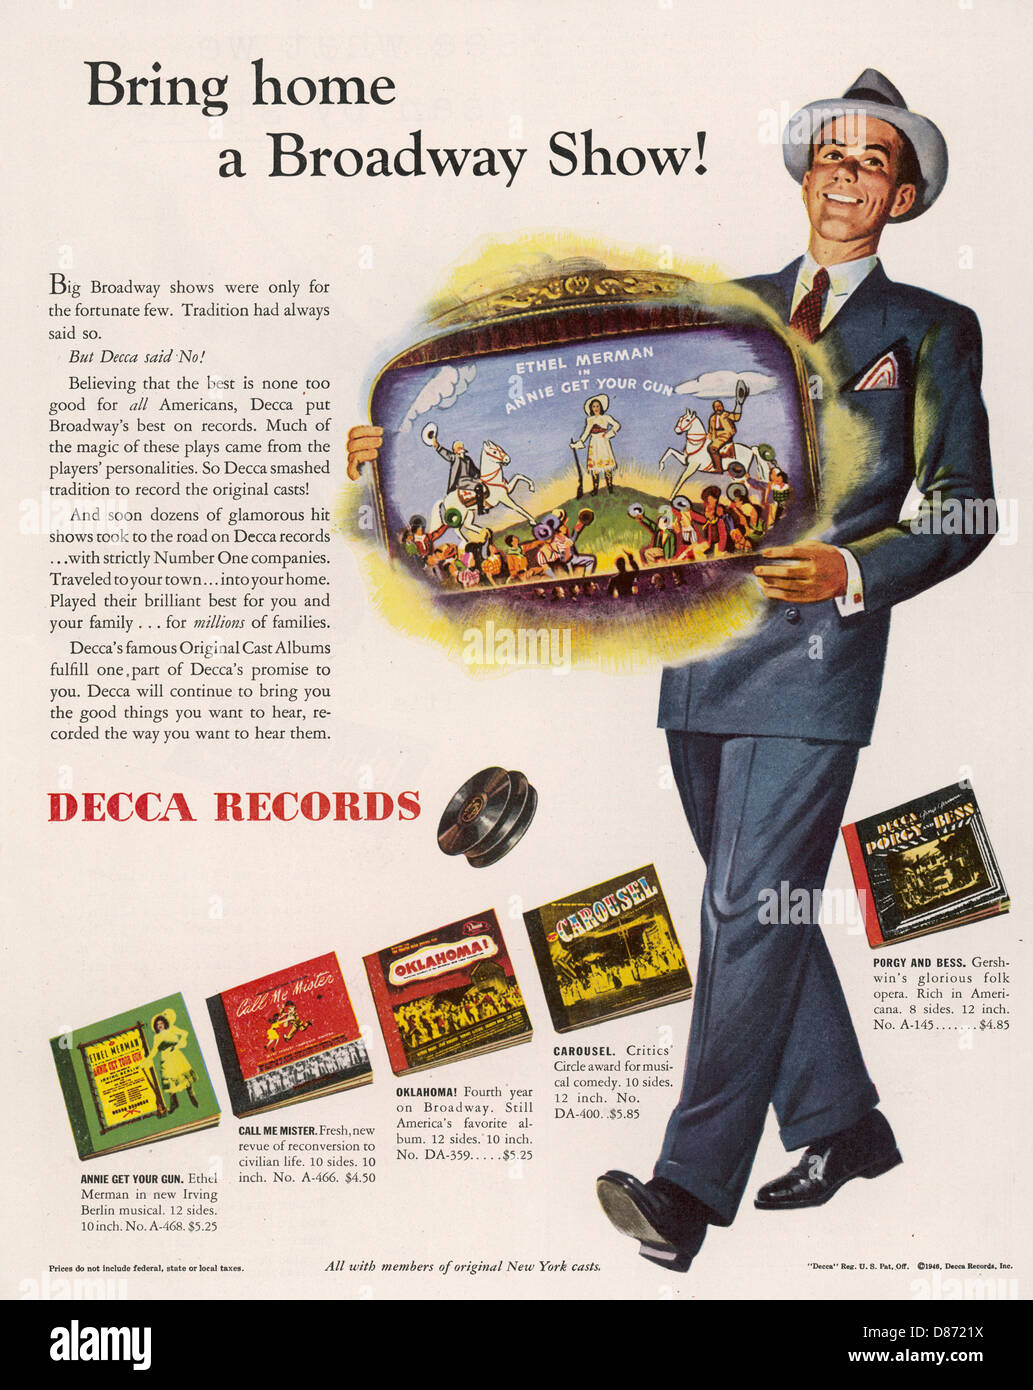 Decca Stock Photos & Decca Stock Images - Alamy